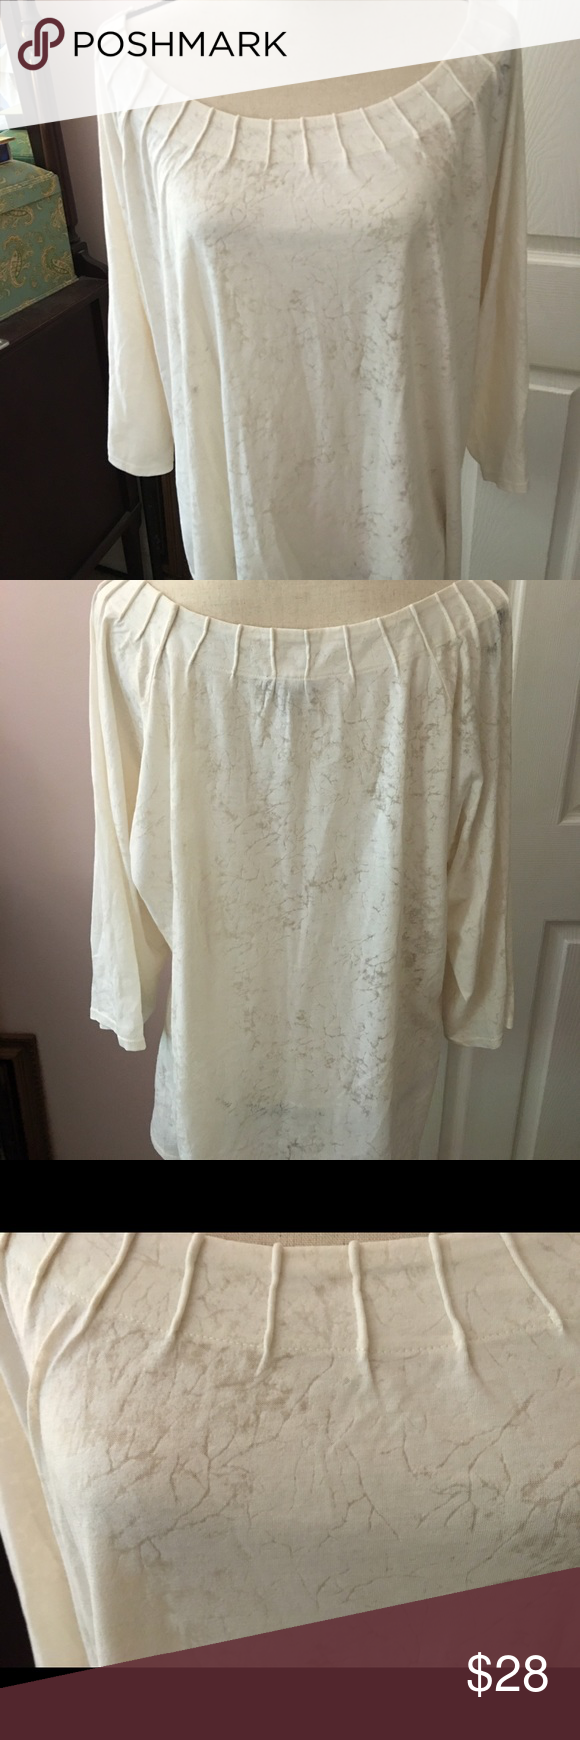 J.Jill cream top Pretty 3/4 sleeved top that's new without tags. The tag fell off as I was photographing it. This top has never been worn. J. Jill Tops Tees - Short Sleeve